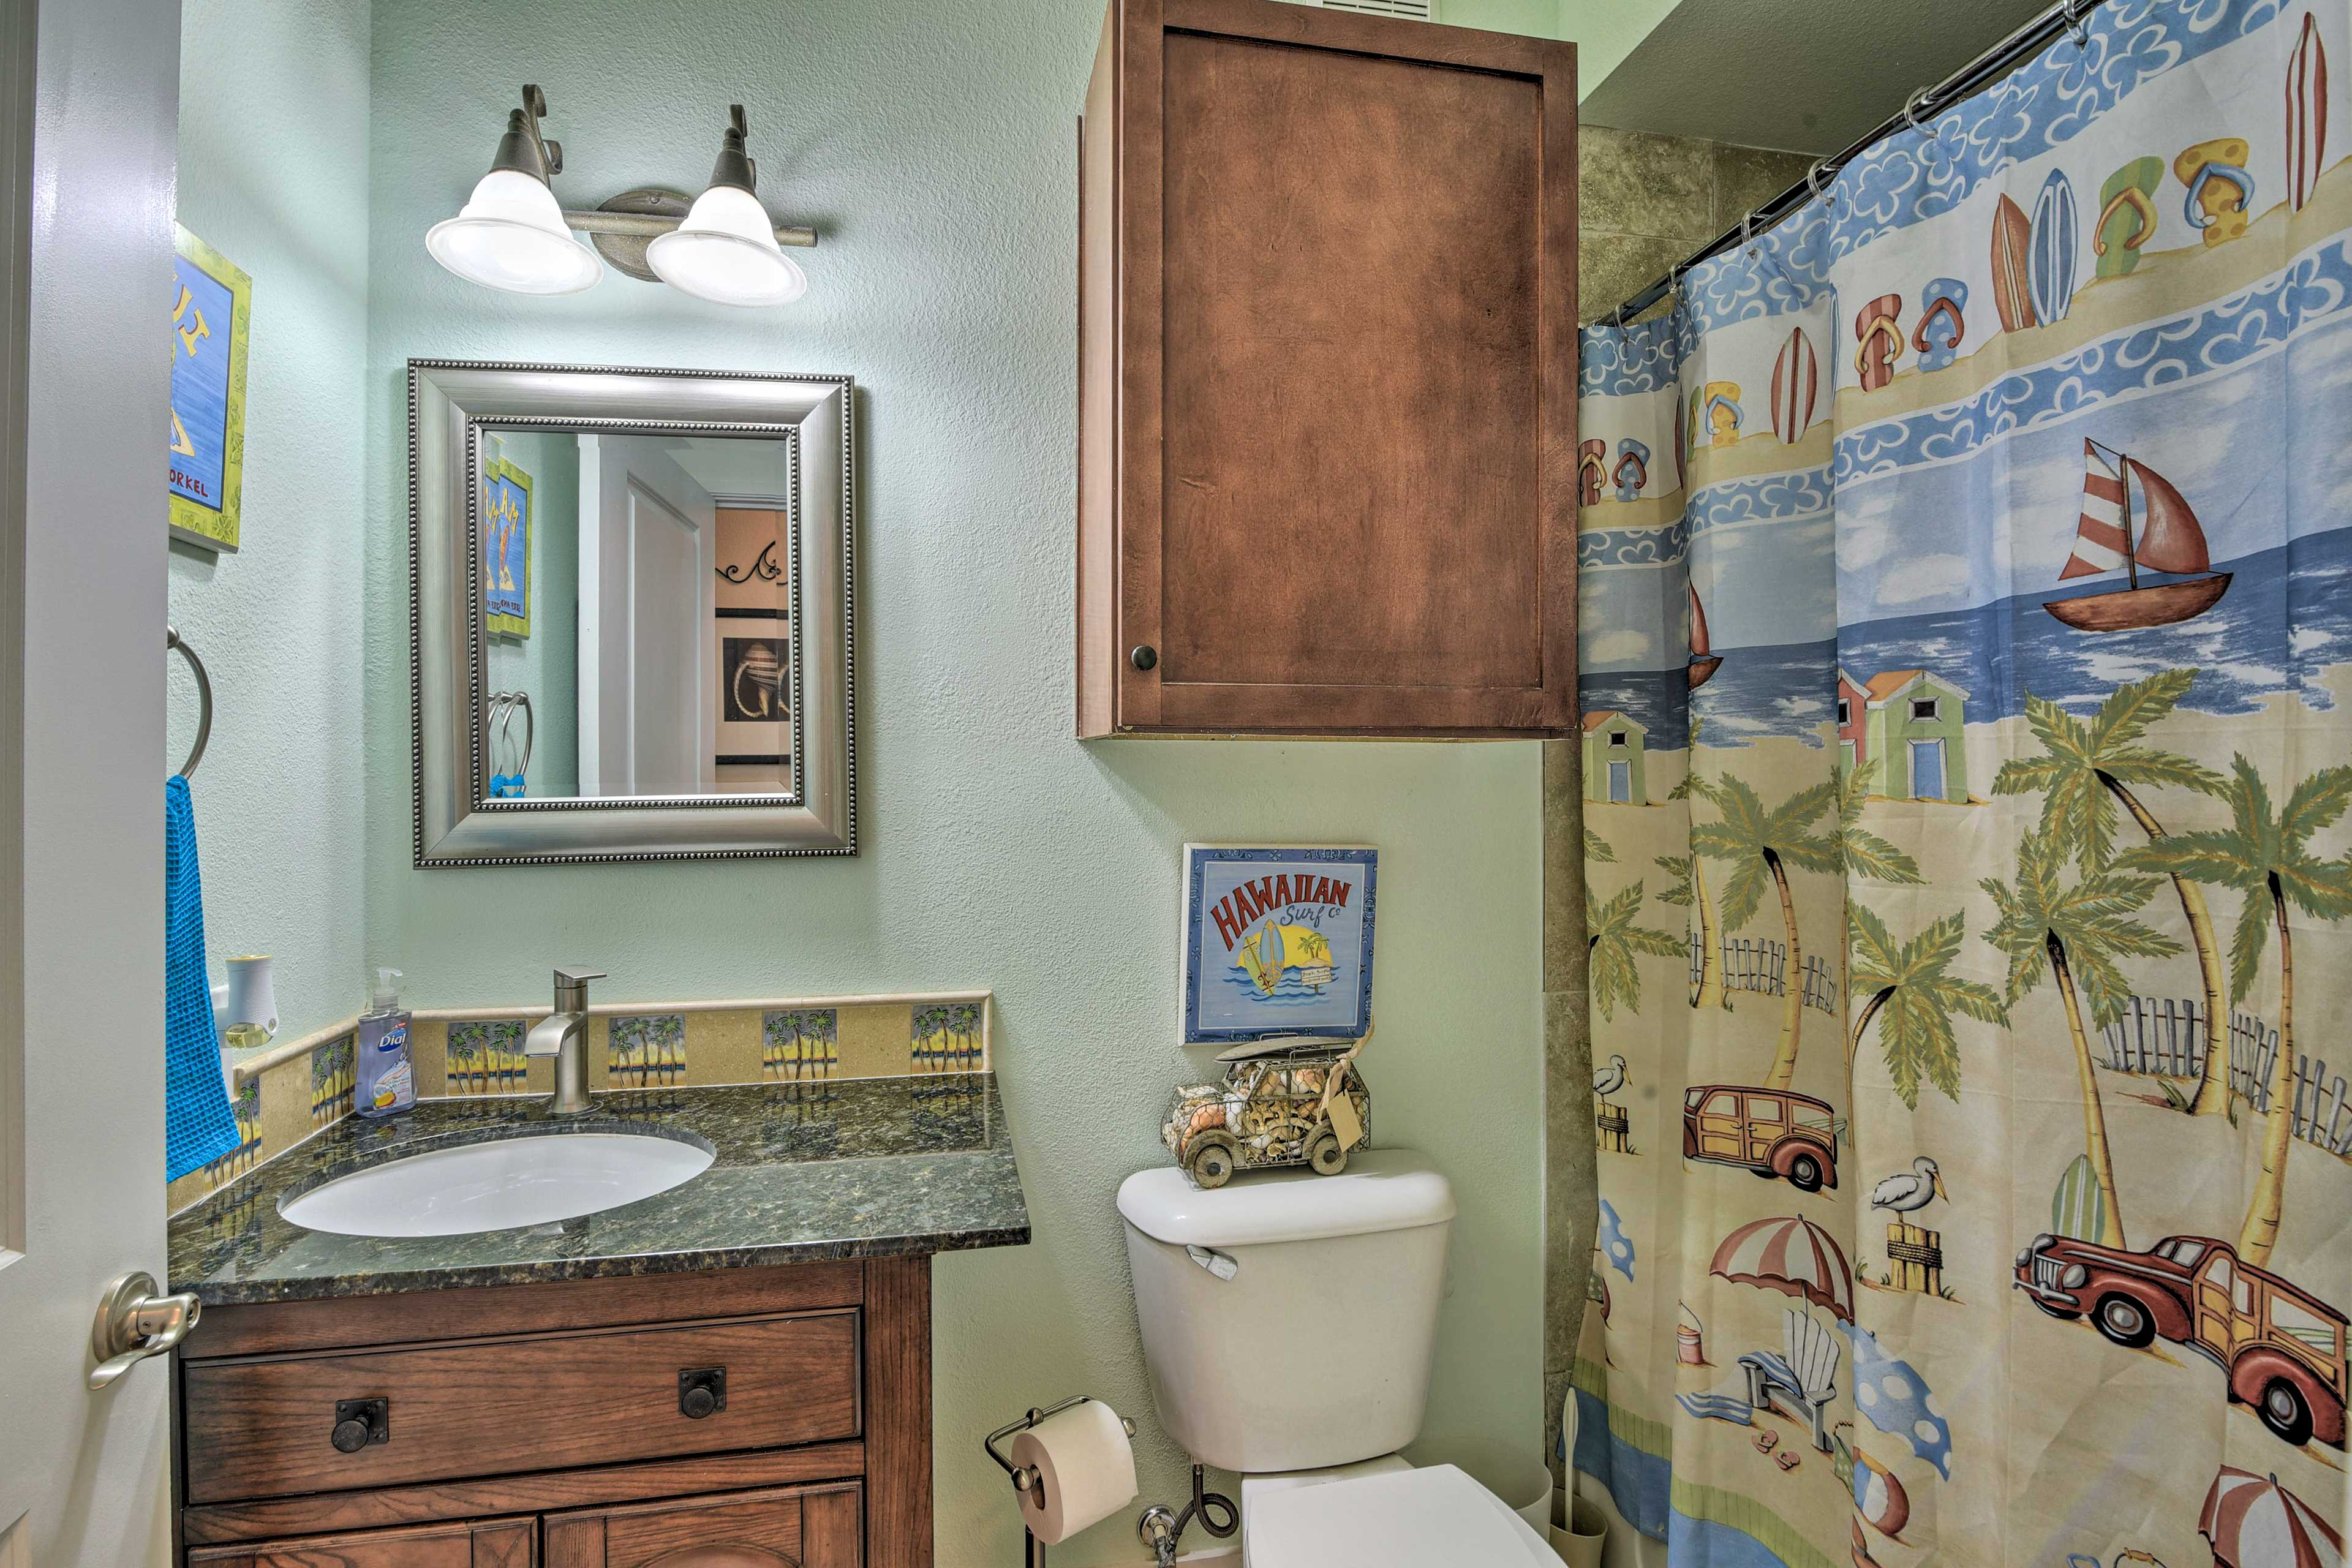 The property features 3 full bathrooms.